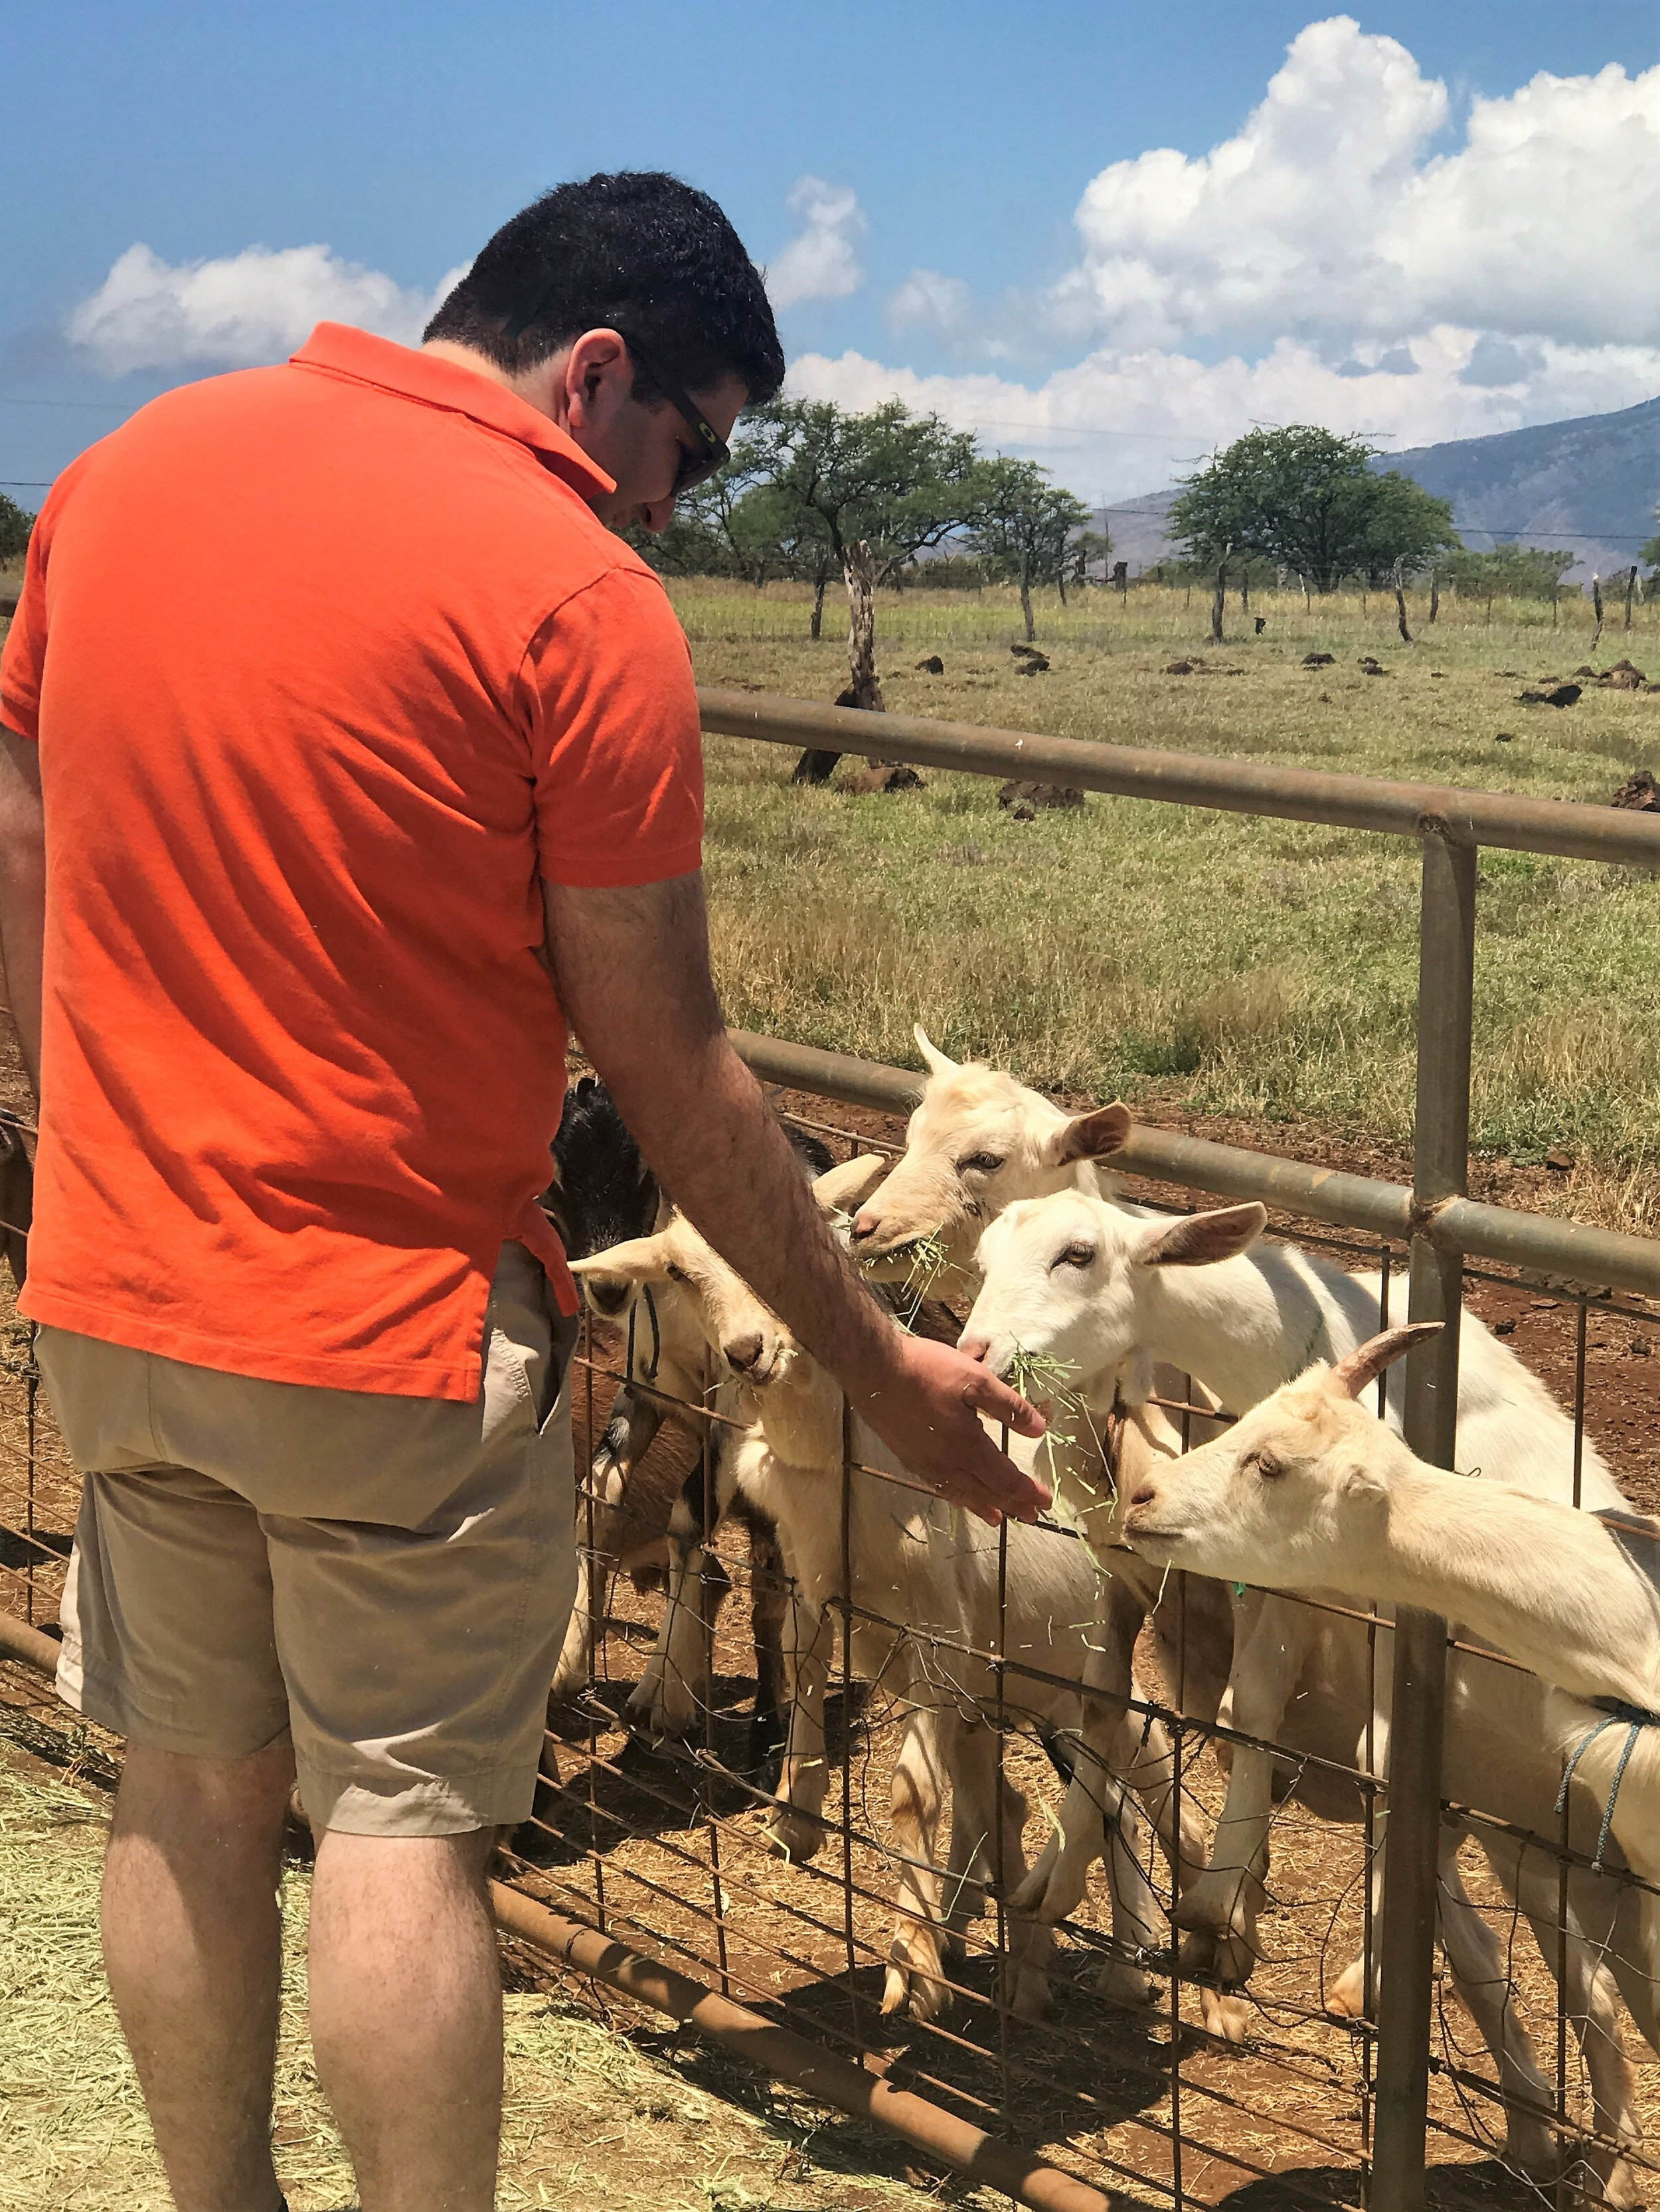 Feeding the goats at Surfing Goat Dairy on Maui / warporweft.com